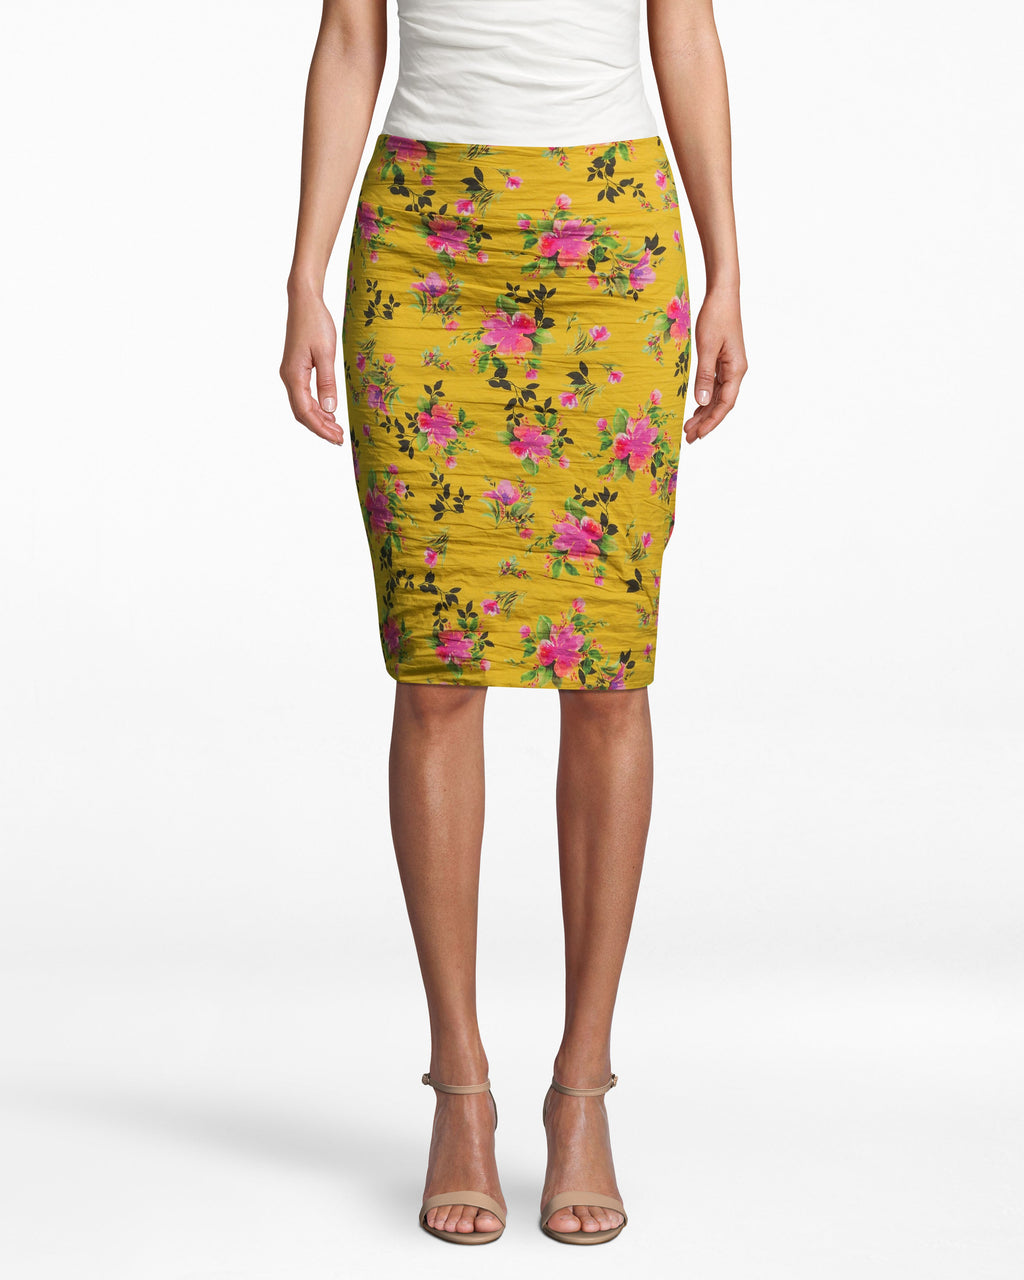 BH10511 - LOTUS LIFE COTTON METAL SKIRT - bottoms - skirts - OUR BOLD LOTUS LIFE PRINT UPGRADES THIS CLASSIC SILHOUETTE. THIS STATEMENT PIECE ALLOWS FOR SEAMLESS TRANSITION FROM DESK TO DRINKS. ZIPPER FOR CLOSURE. Add 1 line break STYLIST TIP: WEAR WITH A WHITE TOP AND PINK HEELS FOR A STANDOUT LOOK.